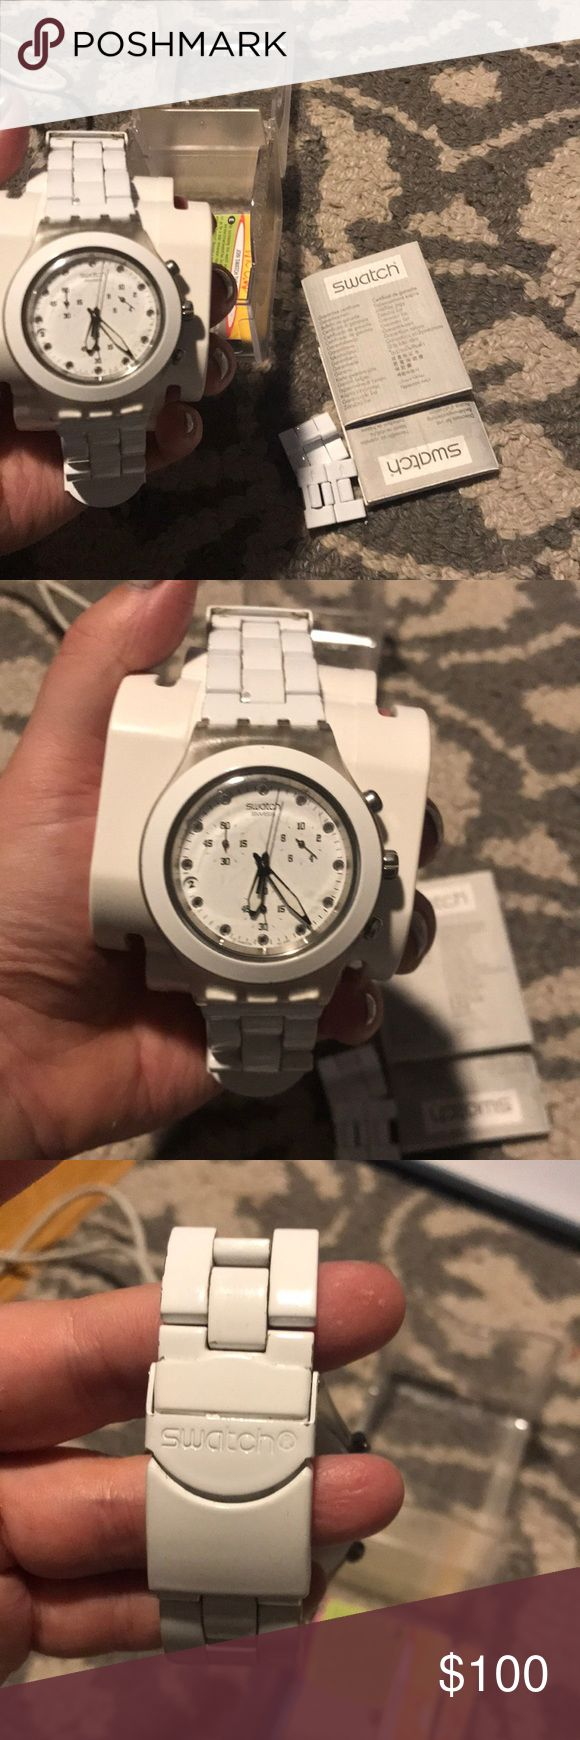 White Swatch Watch Perfect Condition! Swatch Watch! Comes with box and extra links Swatch Accessories Watches